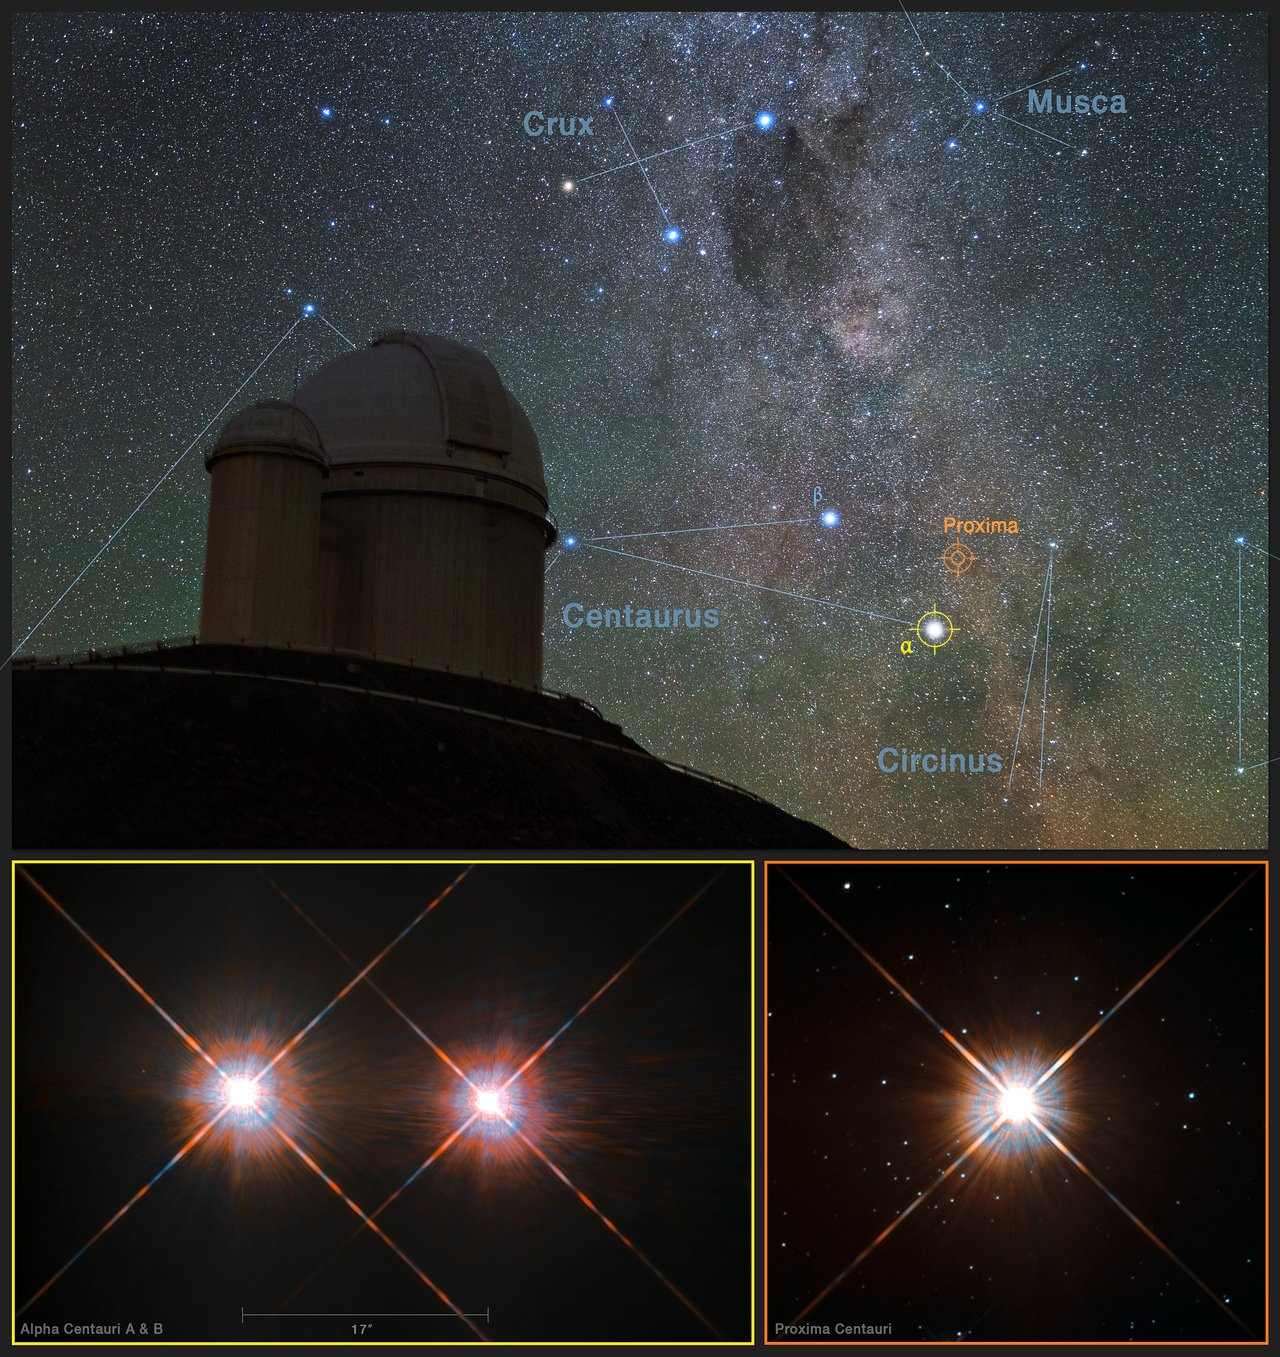 This picture combines a view of the southern skies over the ESO 3.6-metre telescope at the La Silla Observatory in Chile with images of the stars Proxima Centauri (lower-right) and the double star Alpha Centauri AB (lower-left) from the NASA/ESA Hubble Space Telescope. Proxima Centauri is the closest star to the Solar System and is orbited by the planet Proxima b, which was discovered using the HARPS instrument on the ESO 3.6-metre telescope.  Credit: Y. Beletsky (LCO)/ESO/ESA/NASA/M. Zamani